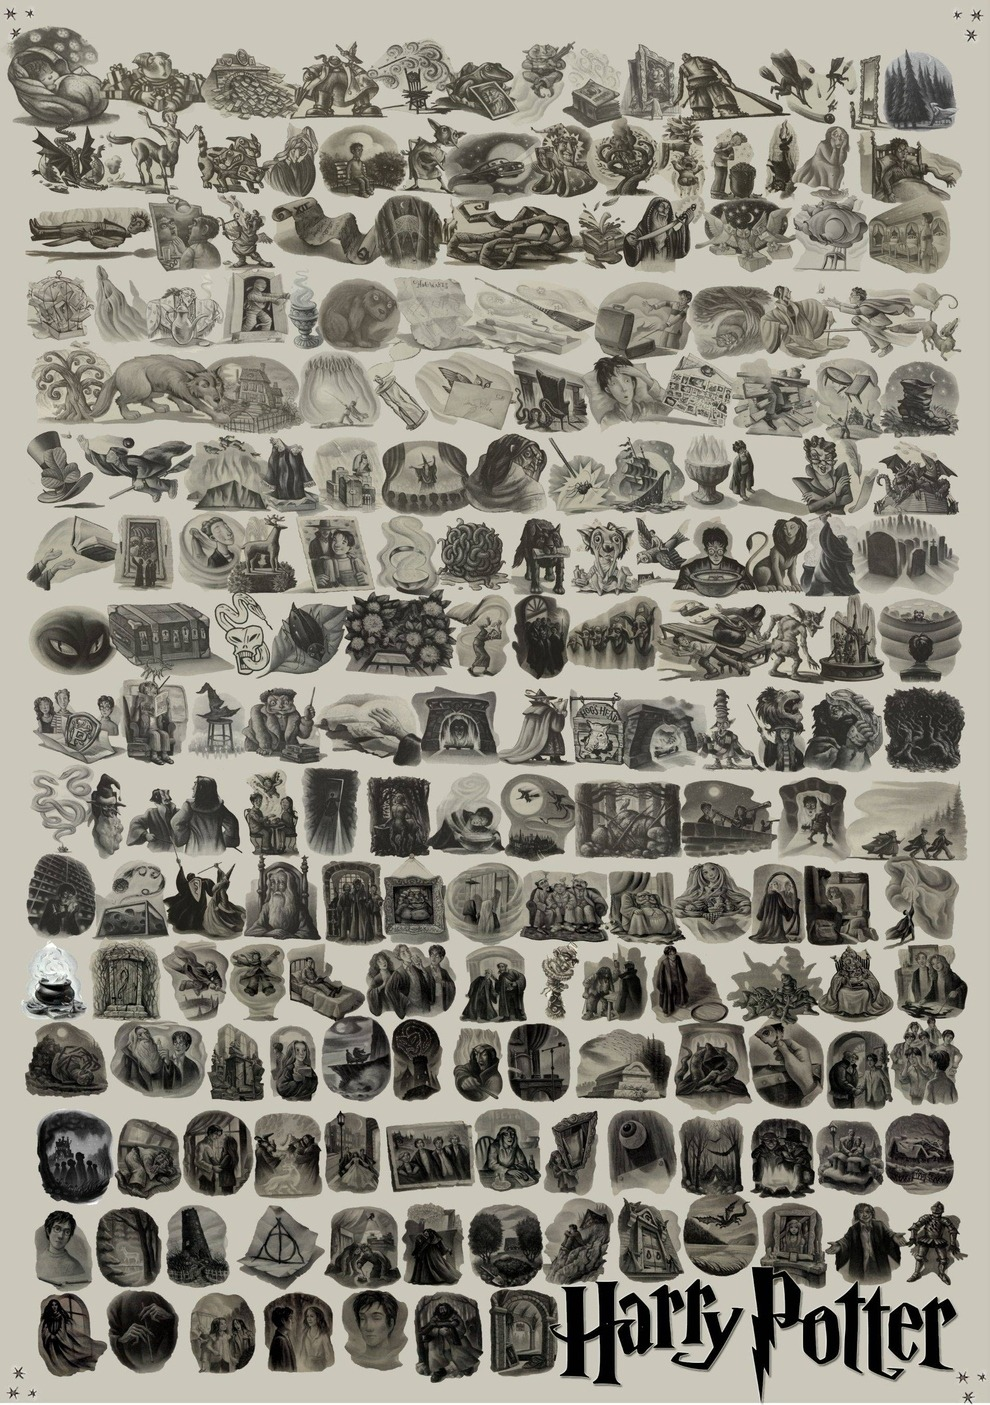 Every Harry Potter chapter illustration